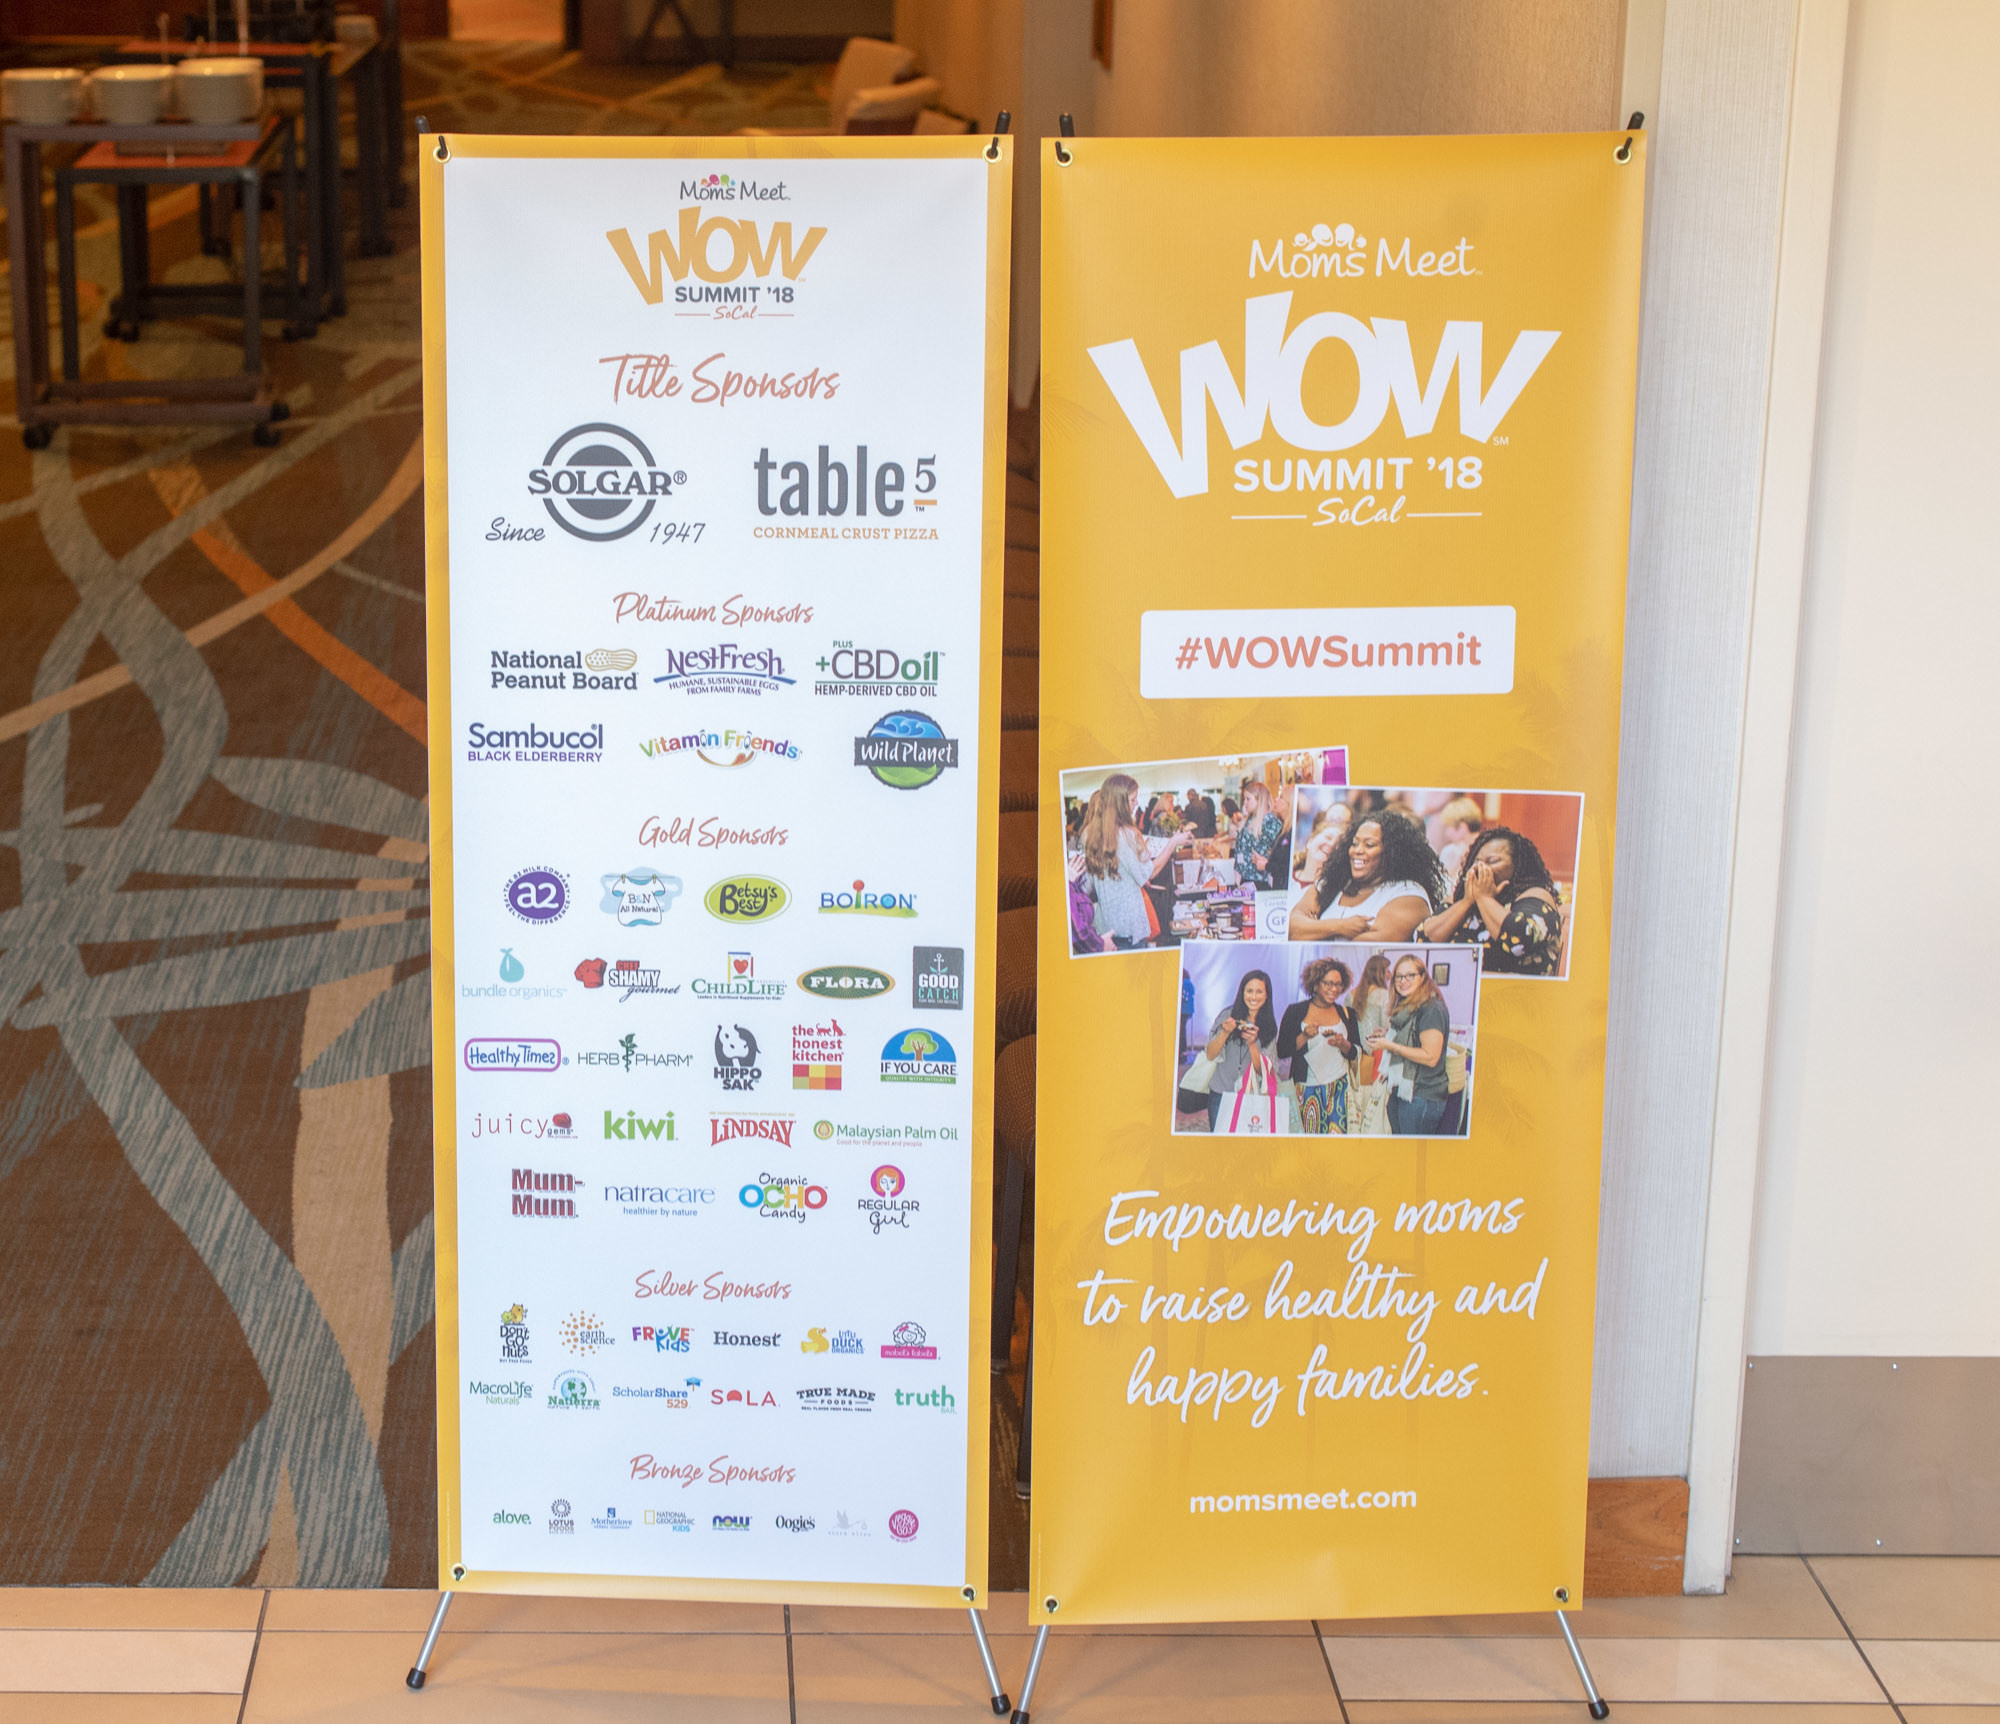 Attendees loved learning about better-for-you brands in the WOW Summit Exhibit Hall